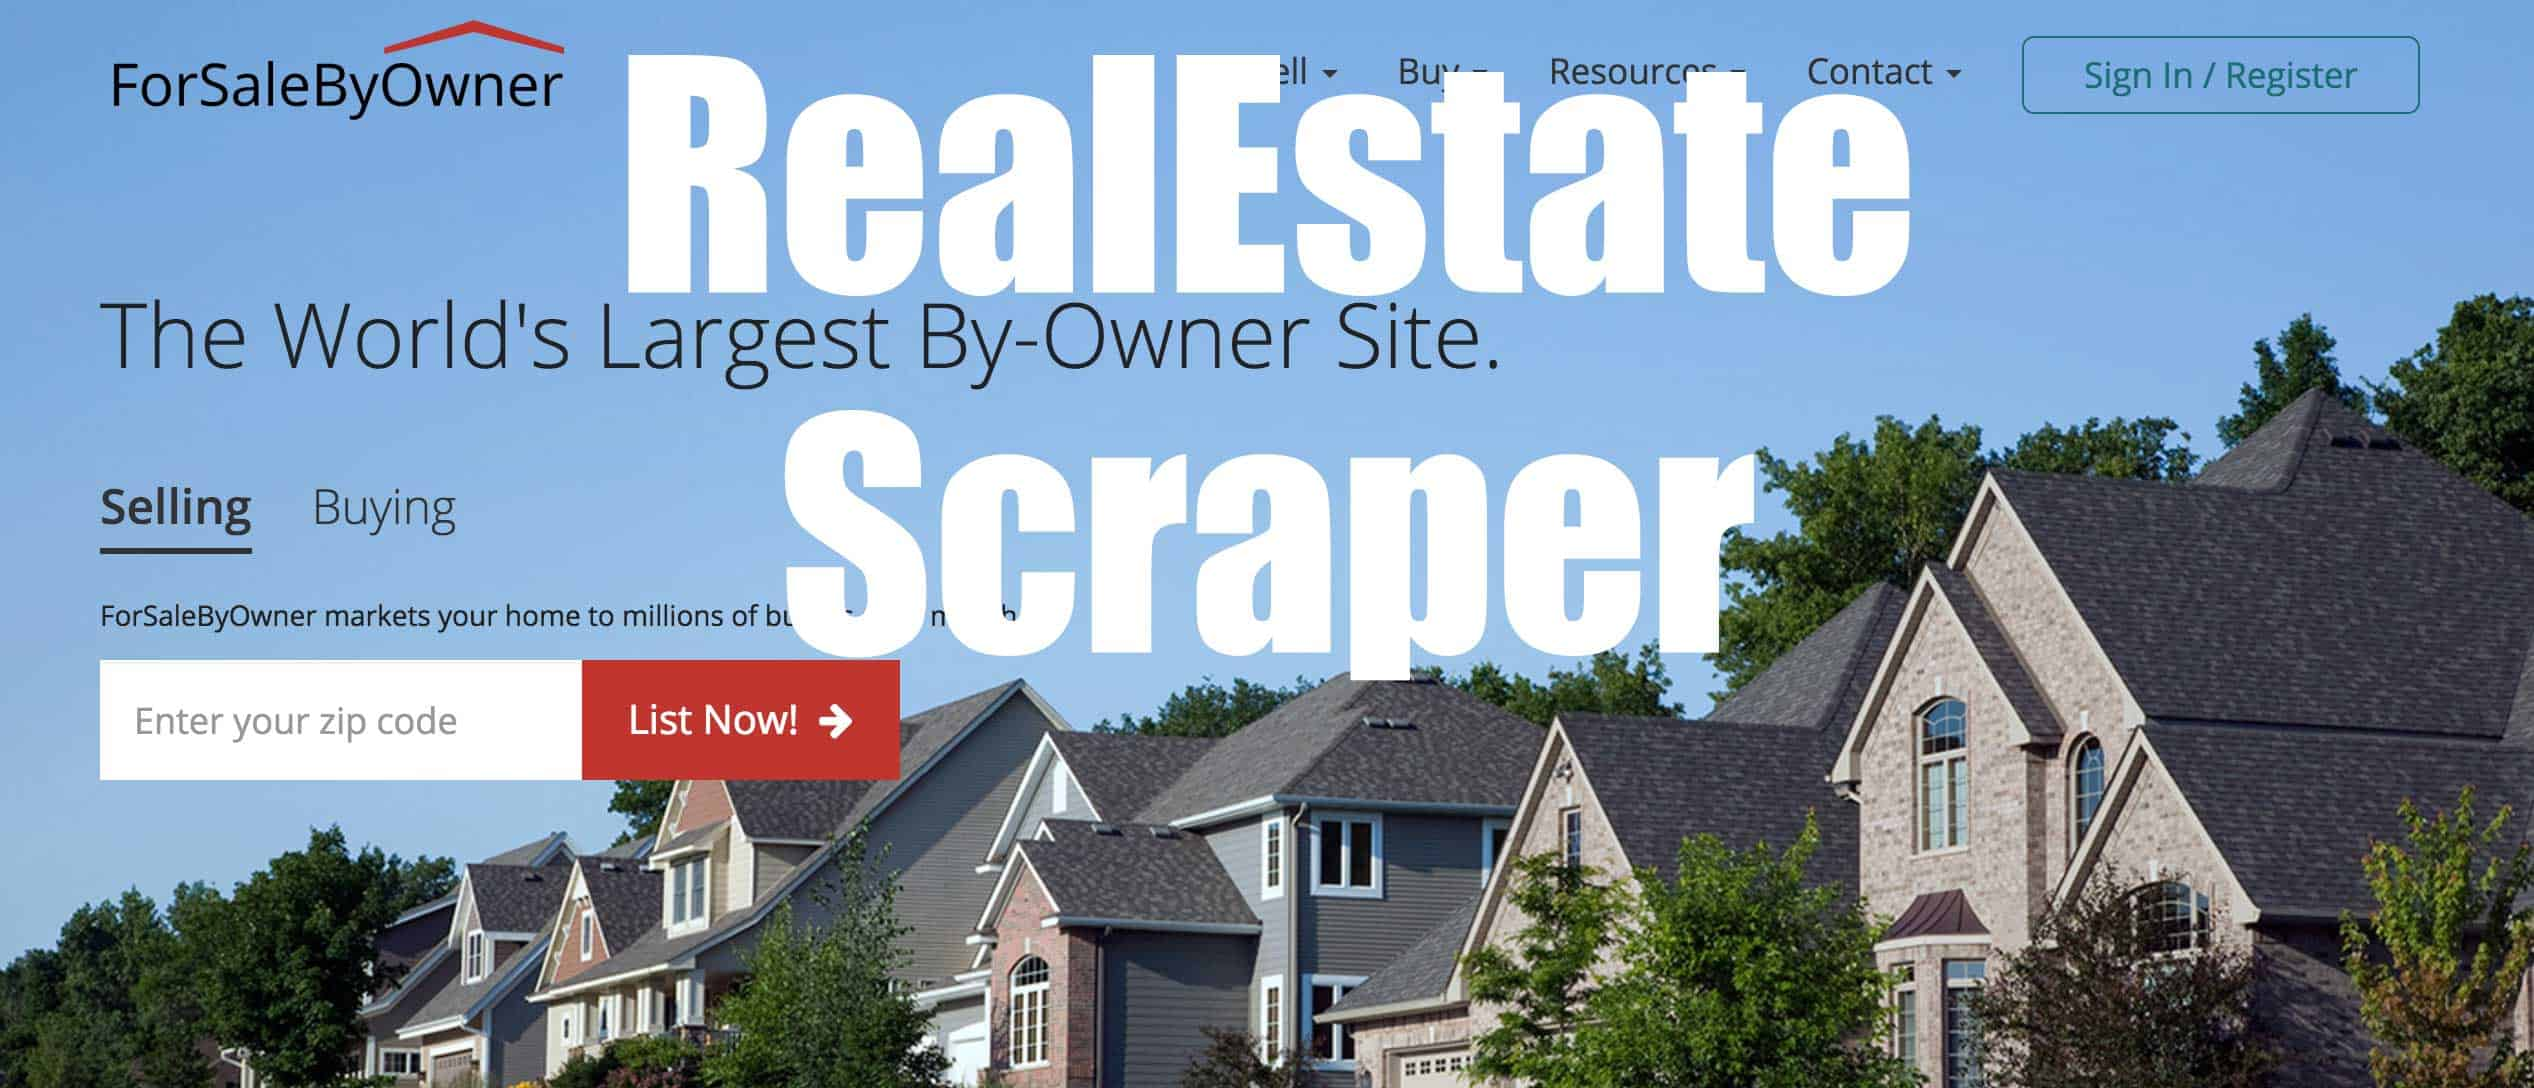 Forsale By Owner real estate scraper